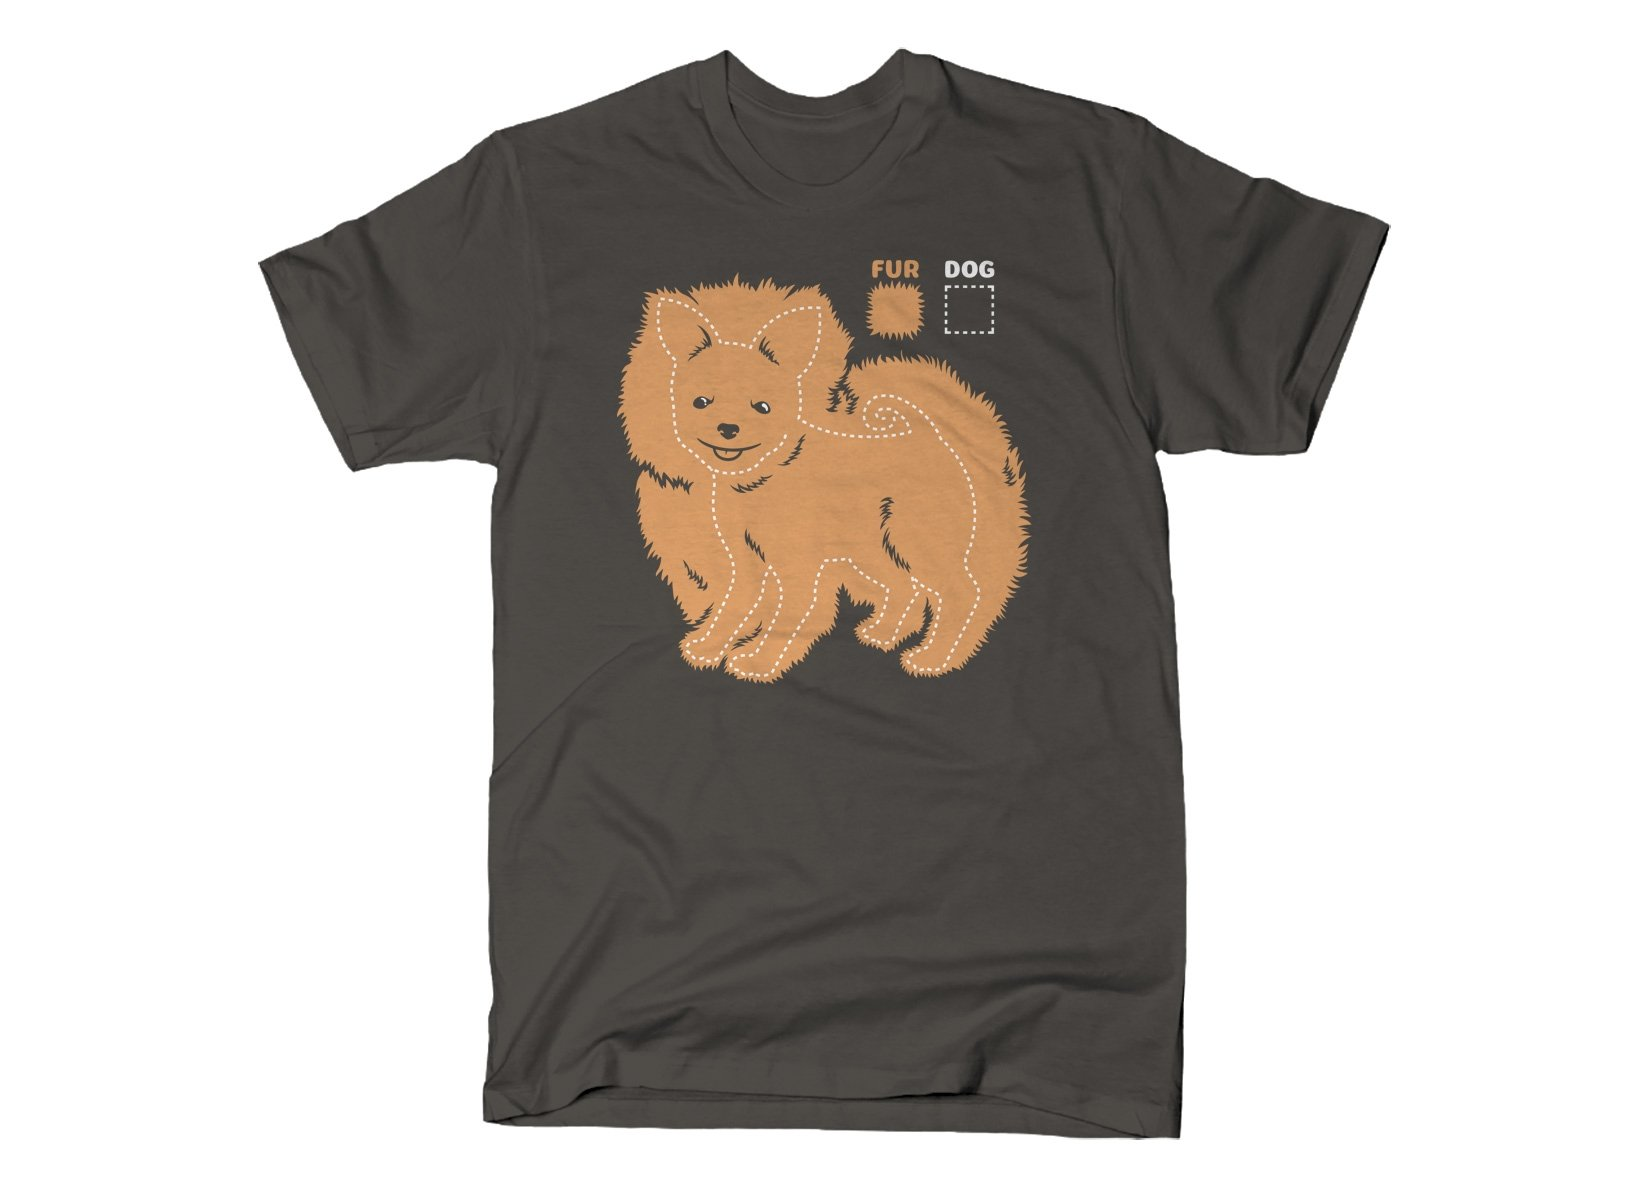 Dog vs Fur Pomeranian on Mens T-Shirt